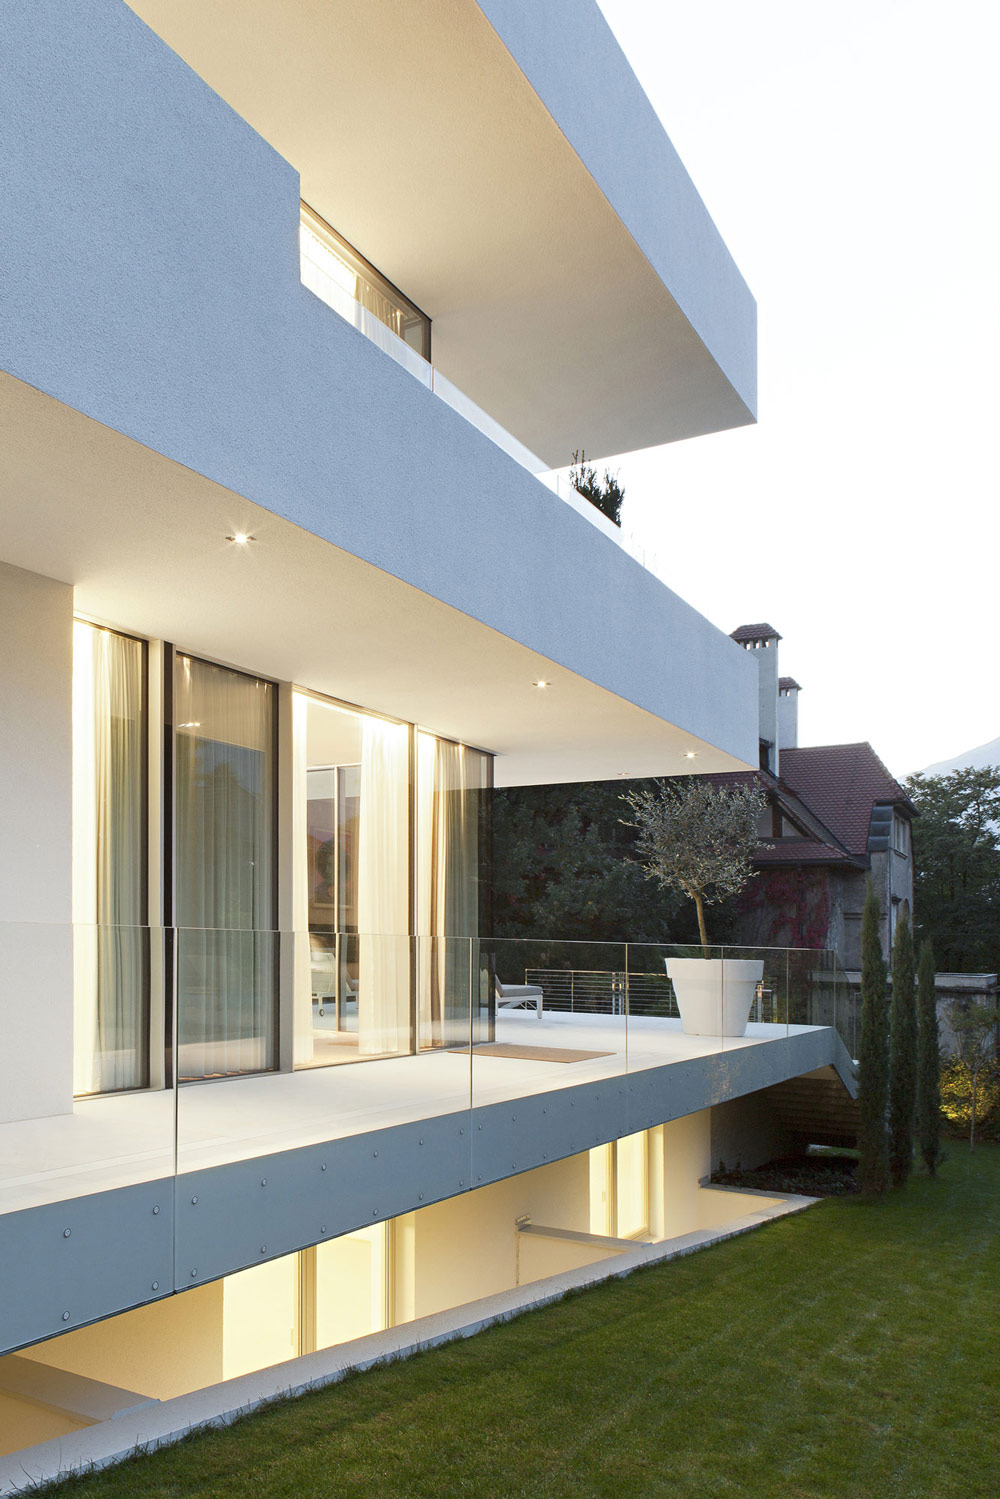 Balcony glass walls lighting house m in meran italy by for Minimalist architecture design house